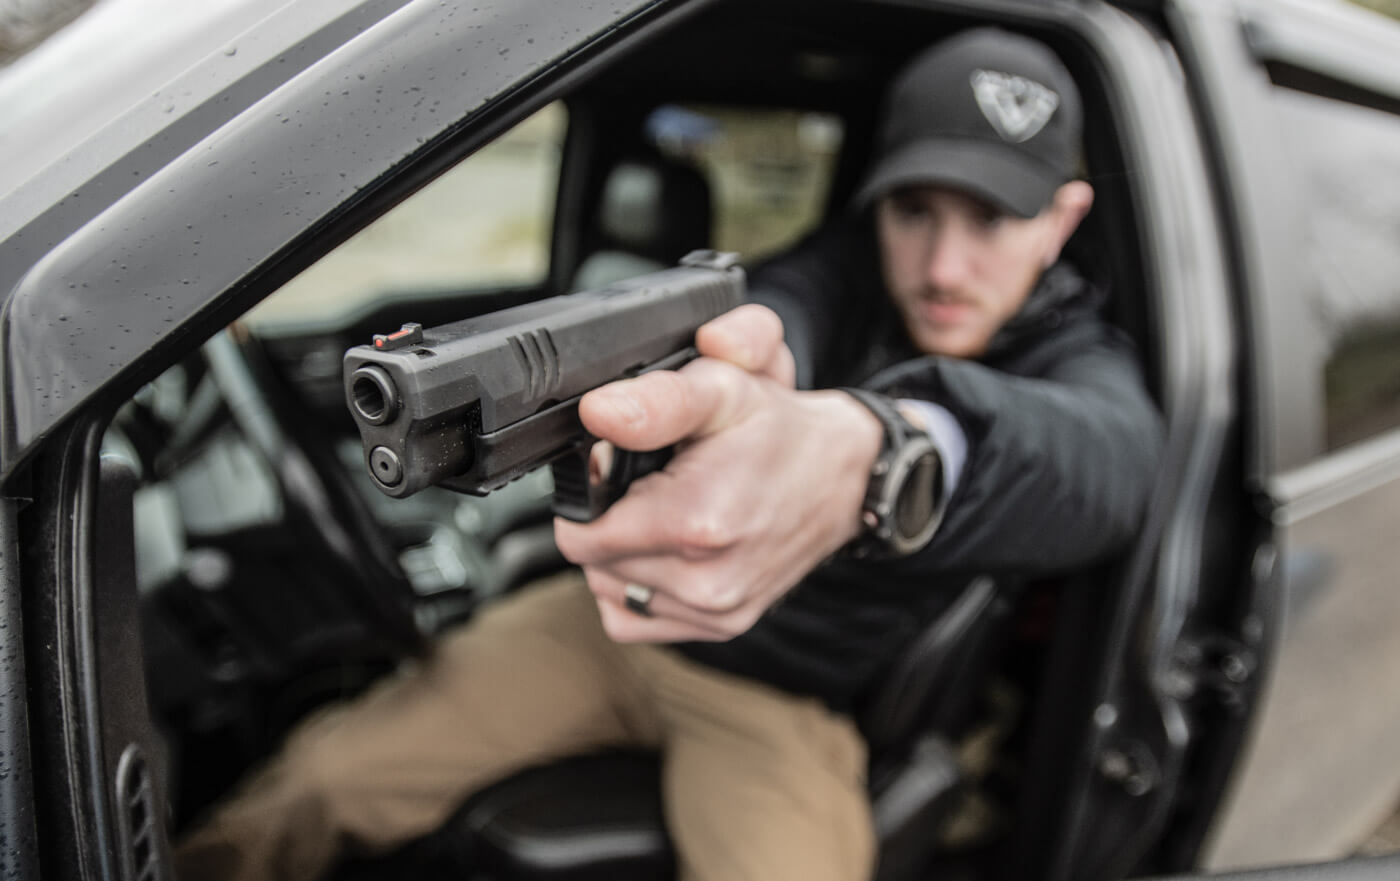 Police officer shooting a 10mm Springfield XD-M from his patrol car